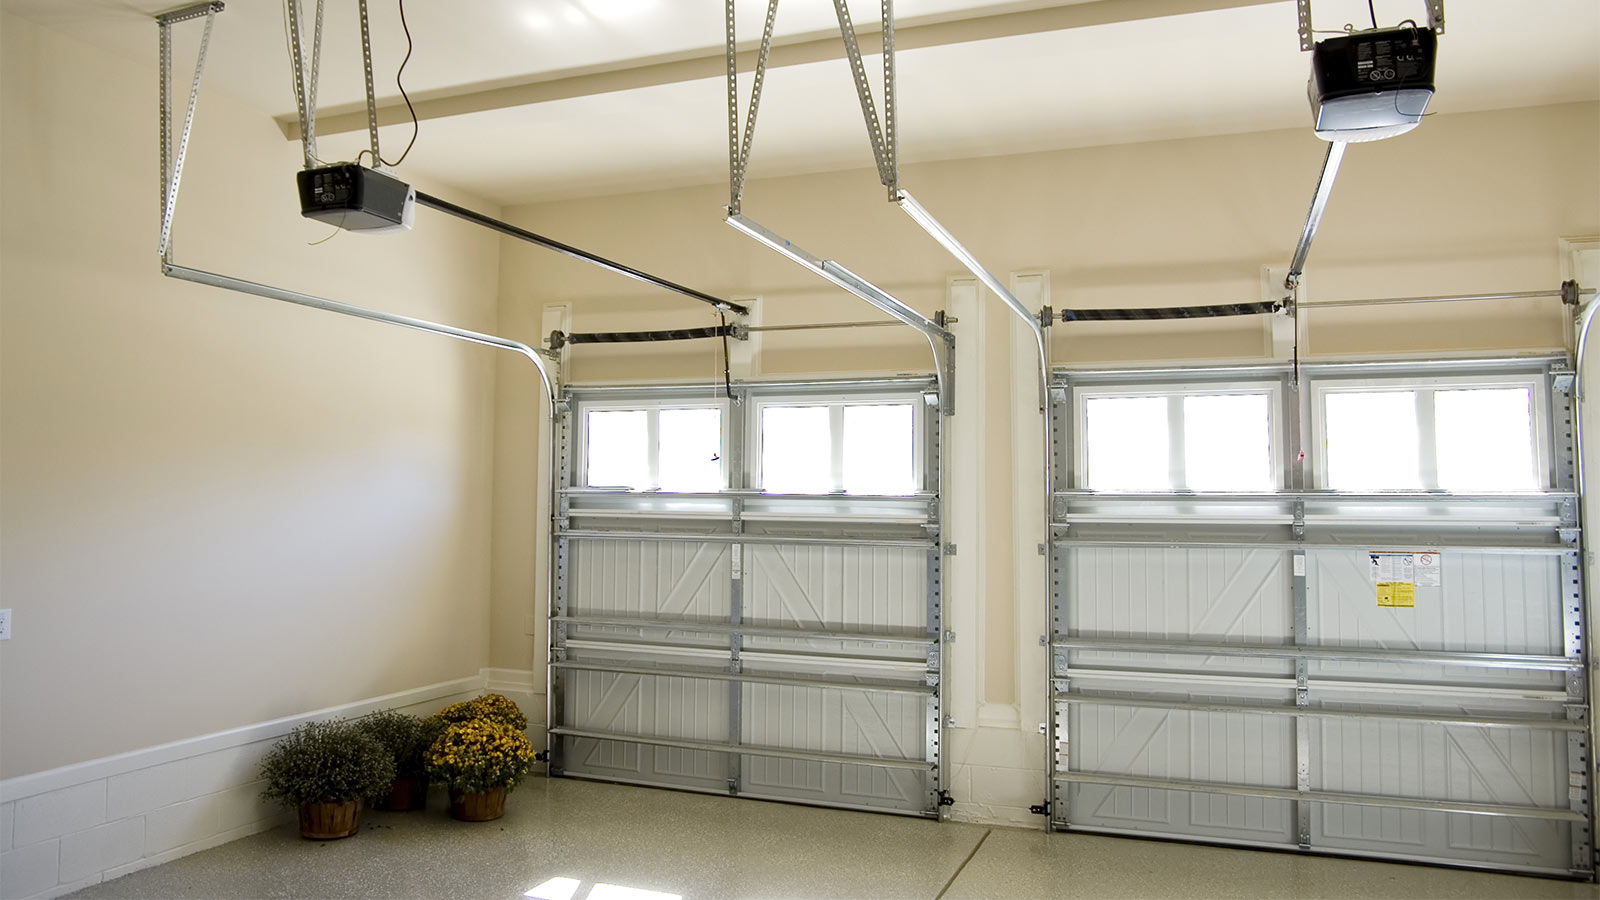 Sectional Garage Doors from High Speed Roller Shutters Wickford suppliers.